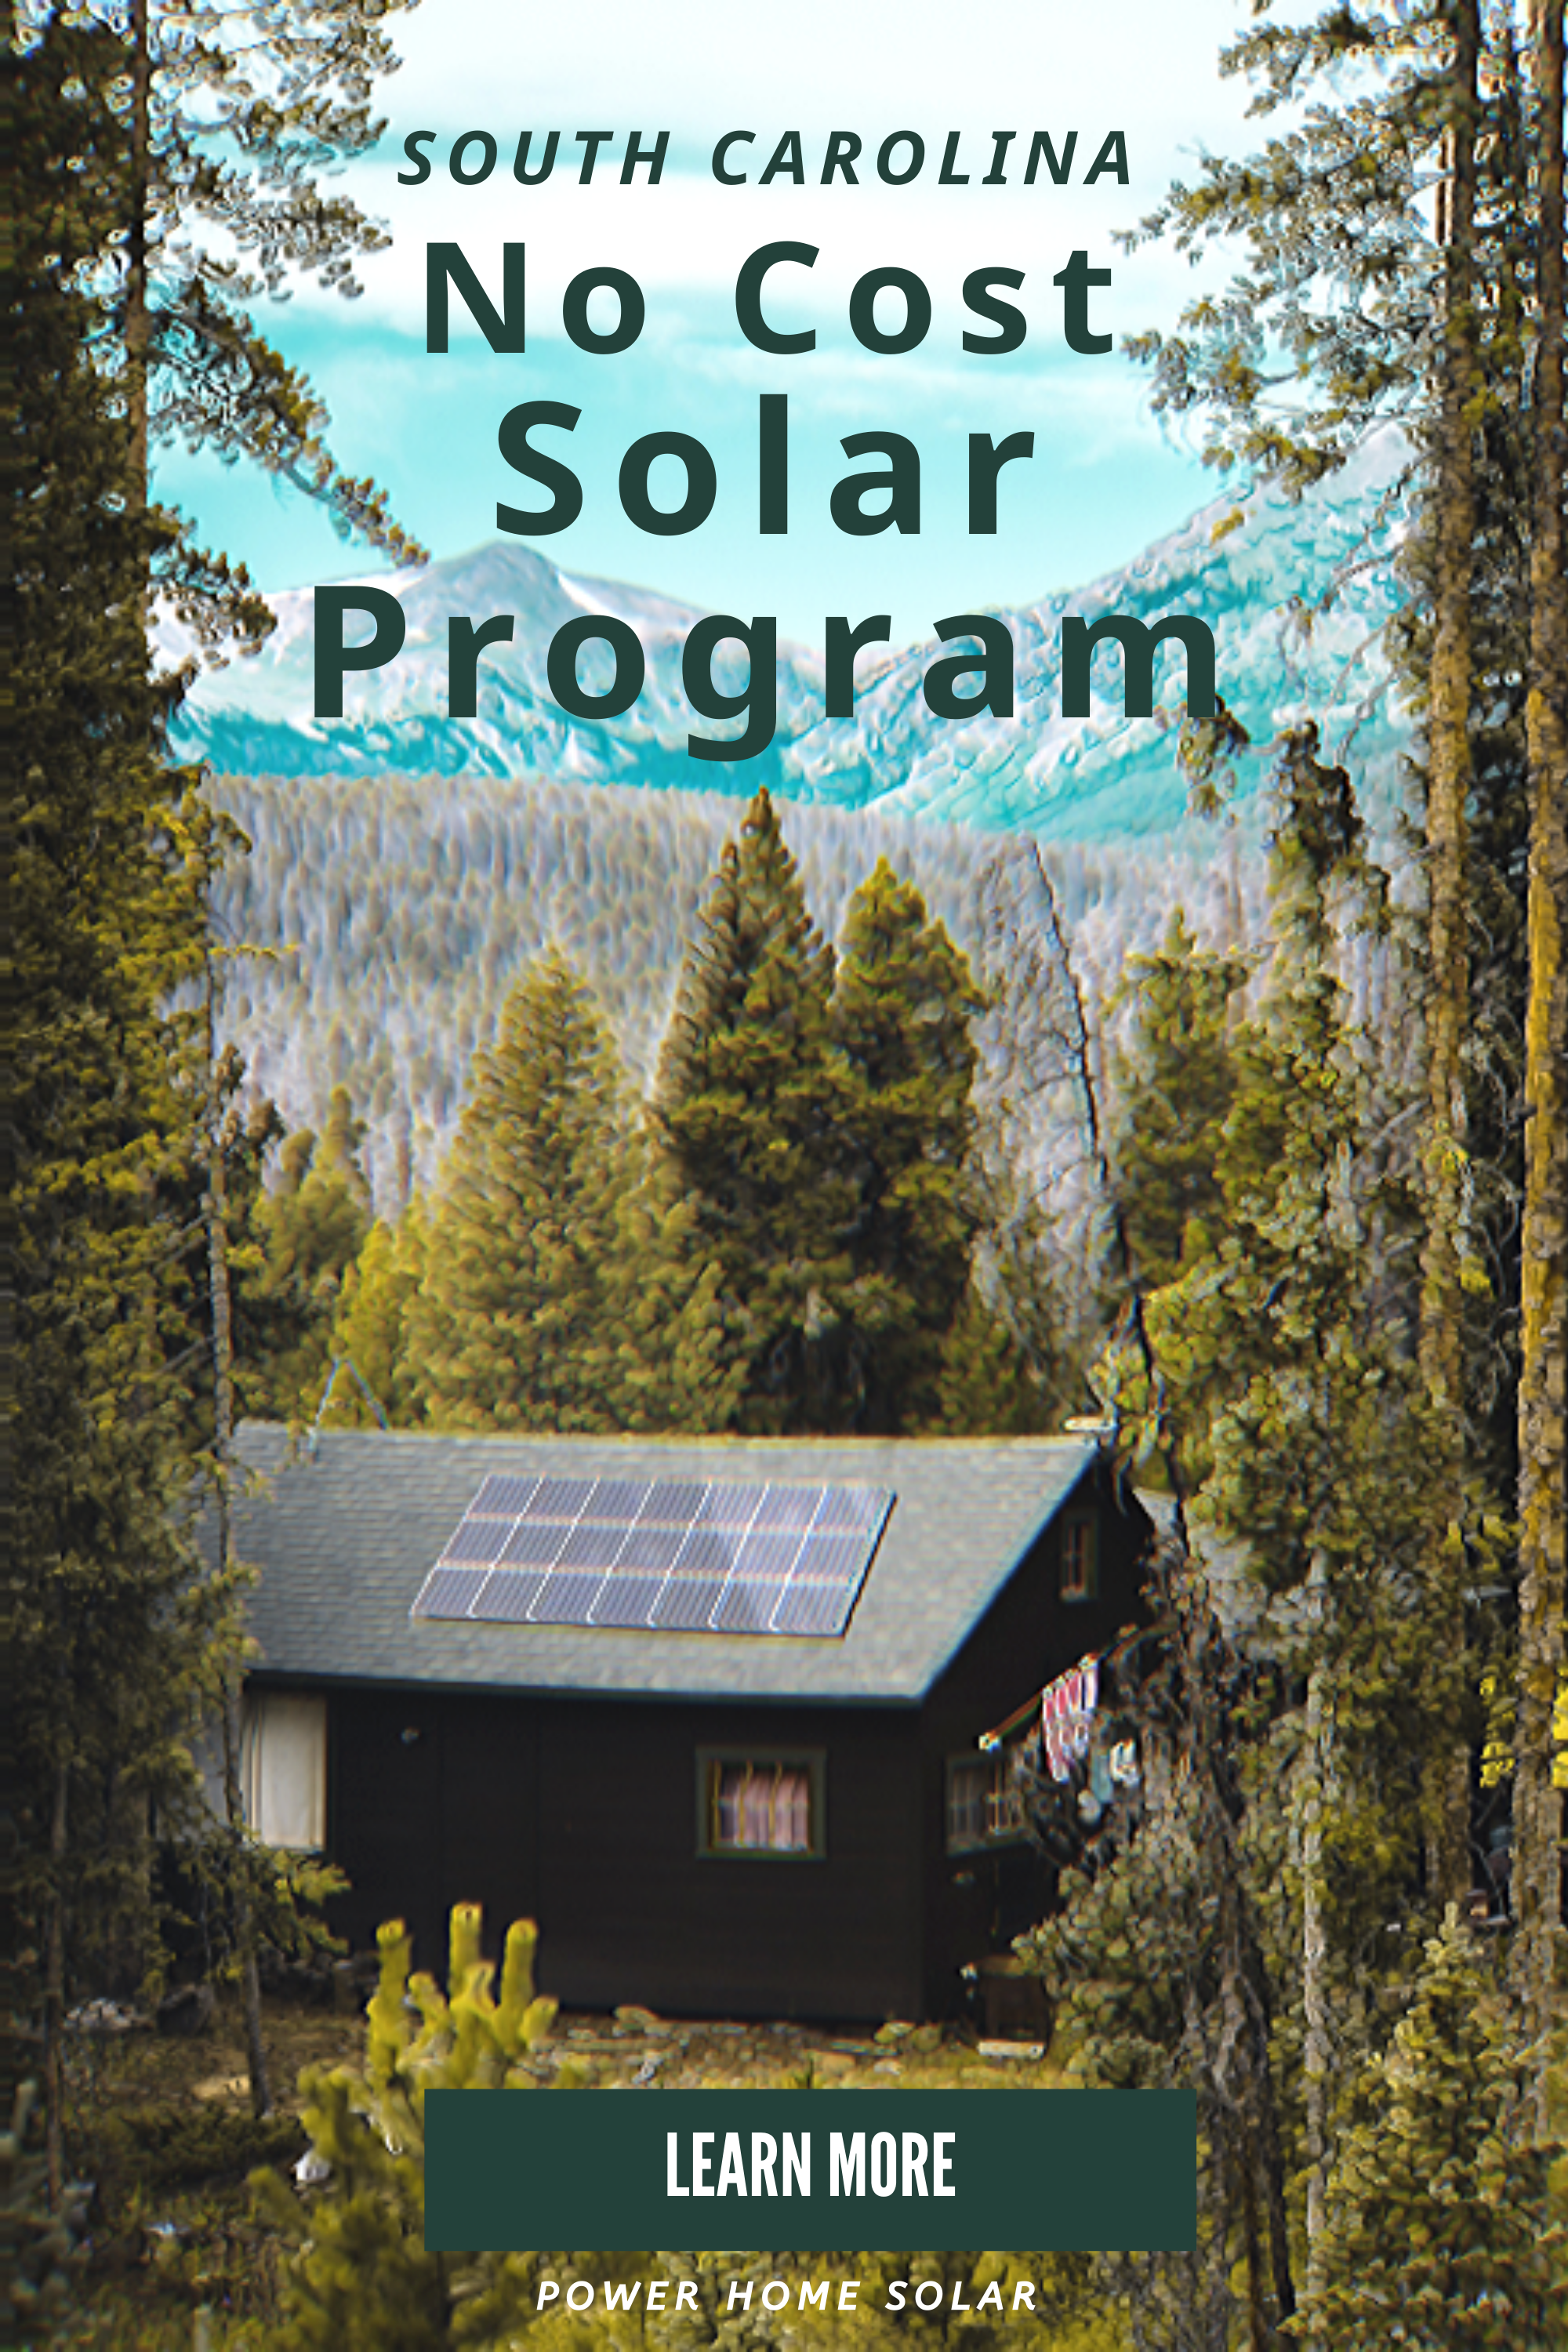 Affordable Solar Program Launched In South Carolina For Middle Class Homeowners In 2020 Solar Solar Installation Homeowner